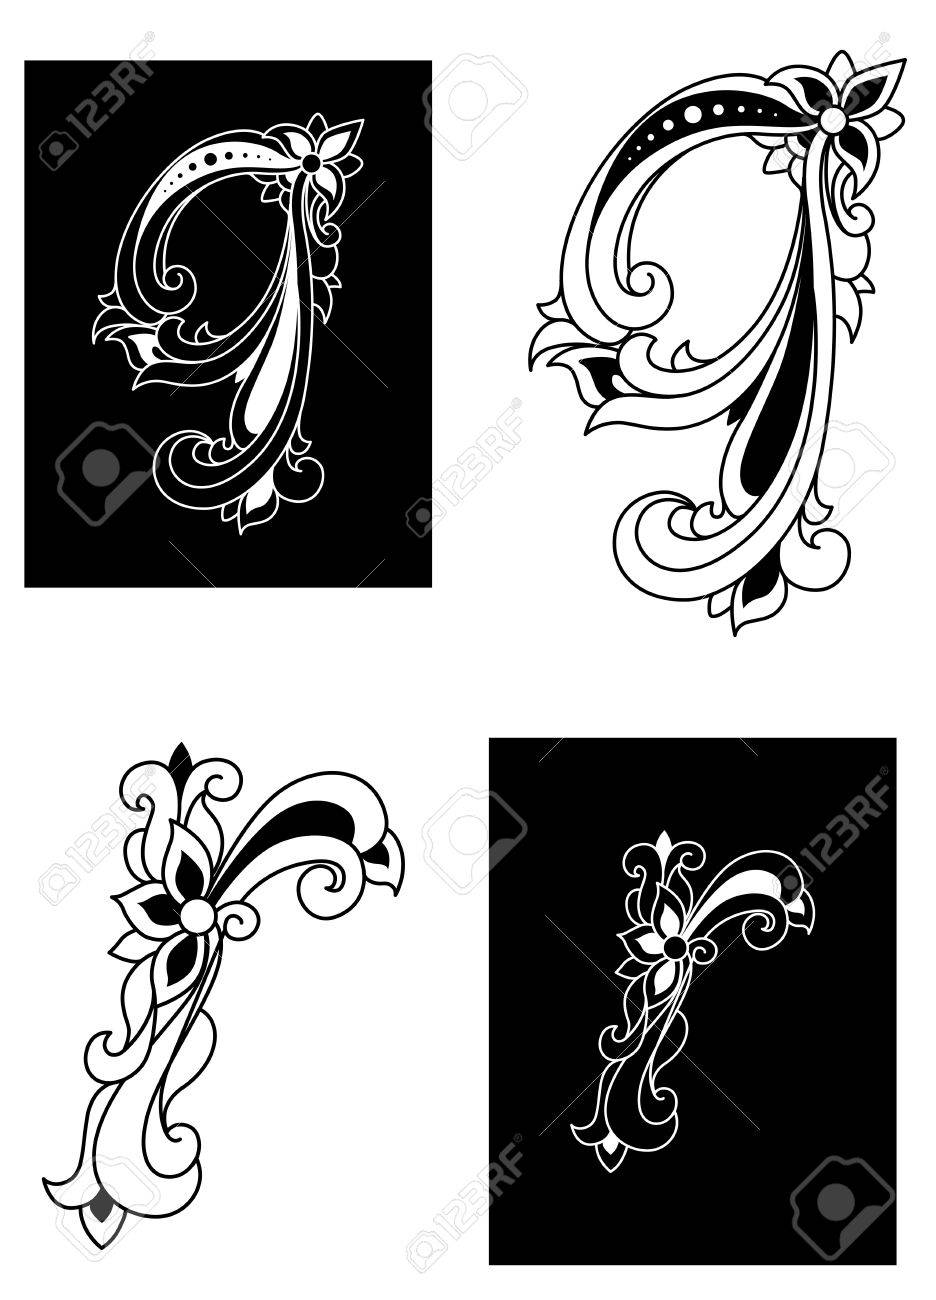 Decorative Letters Decorative Letters Q And R In Floral Style For Design And Ornate